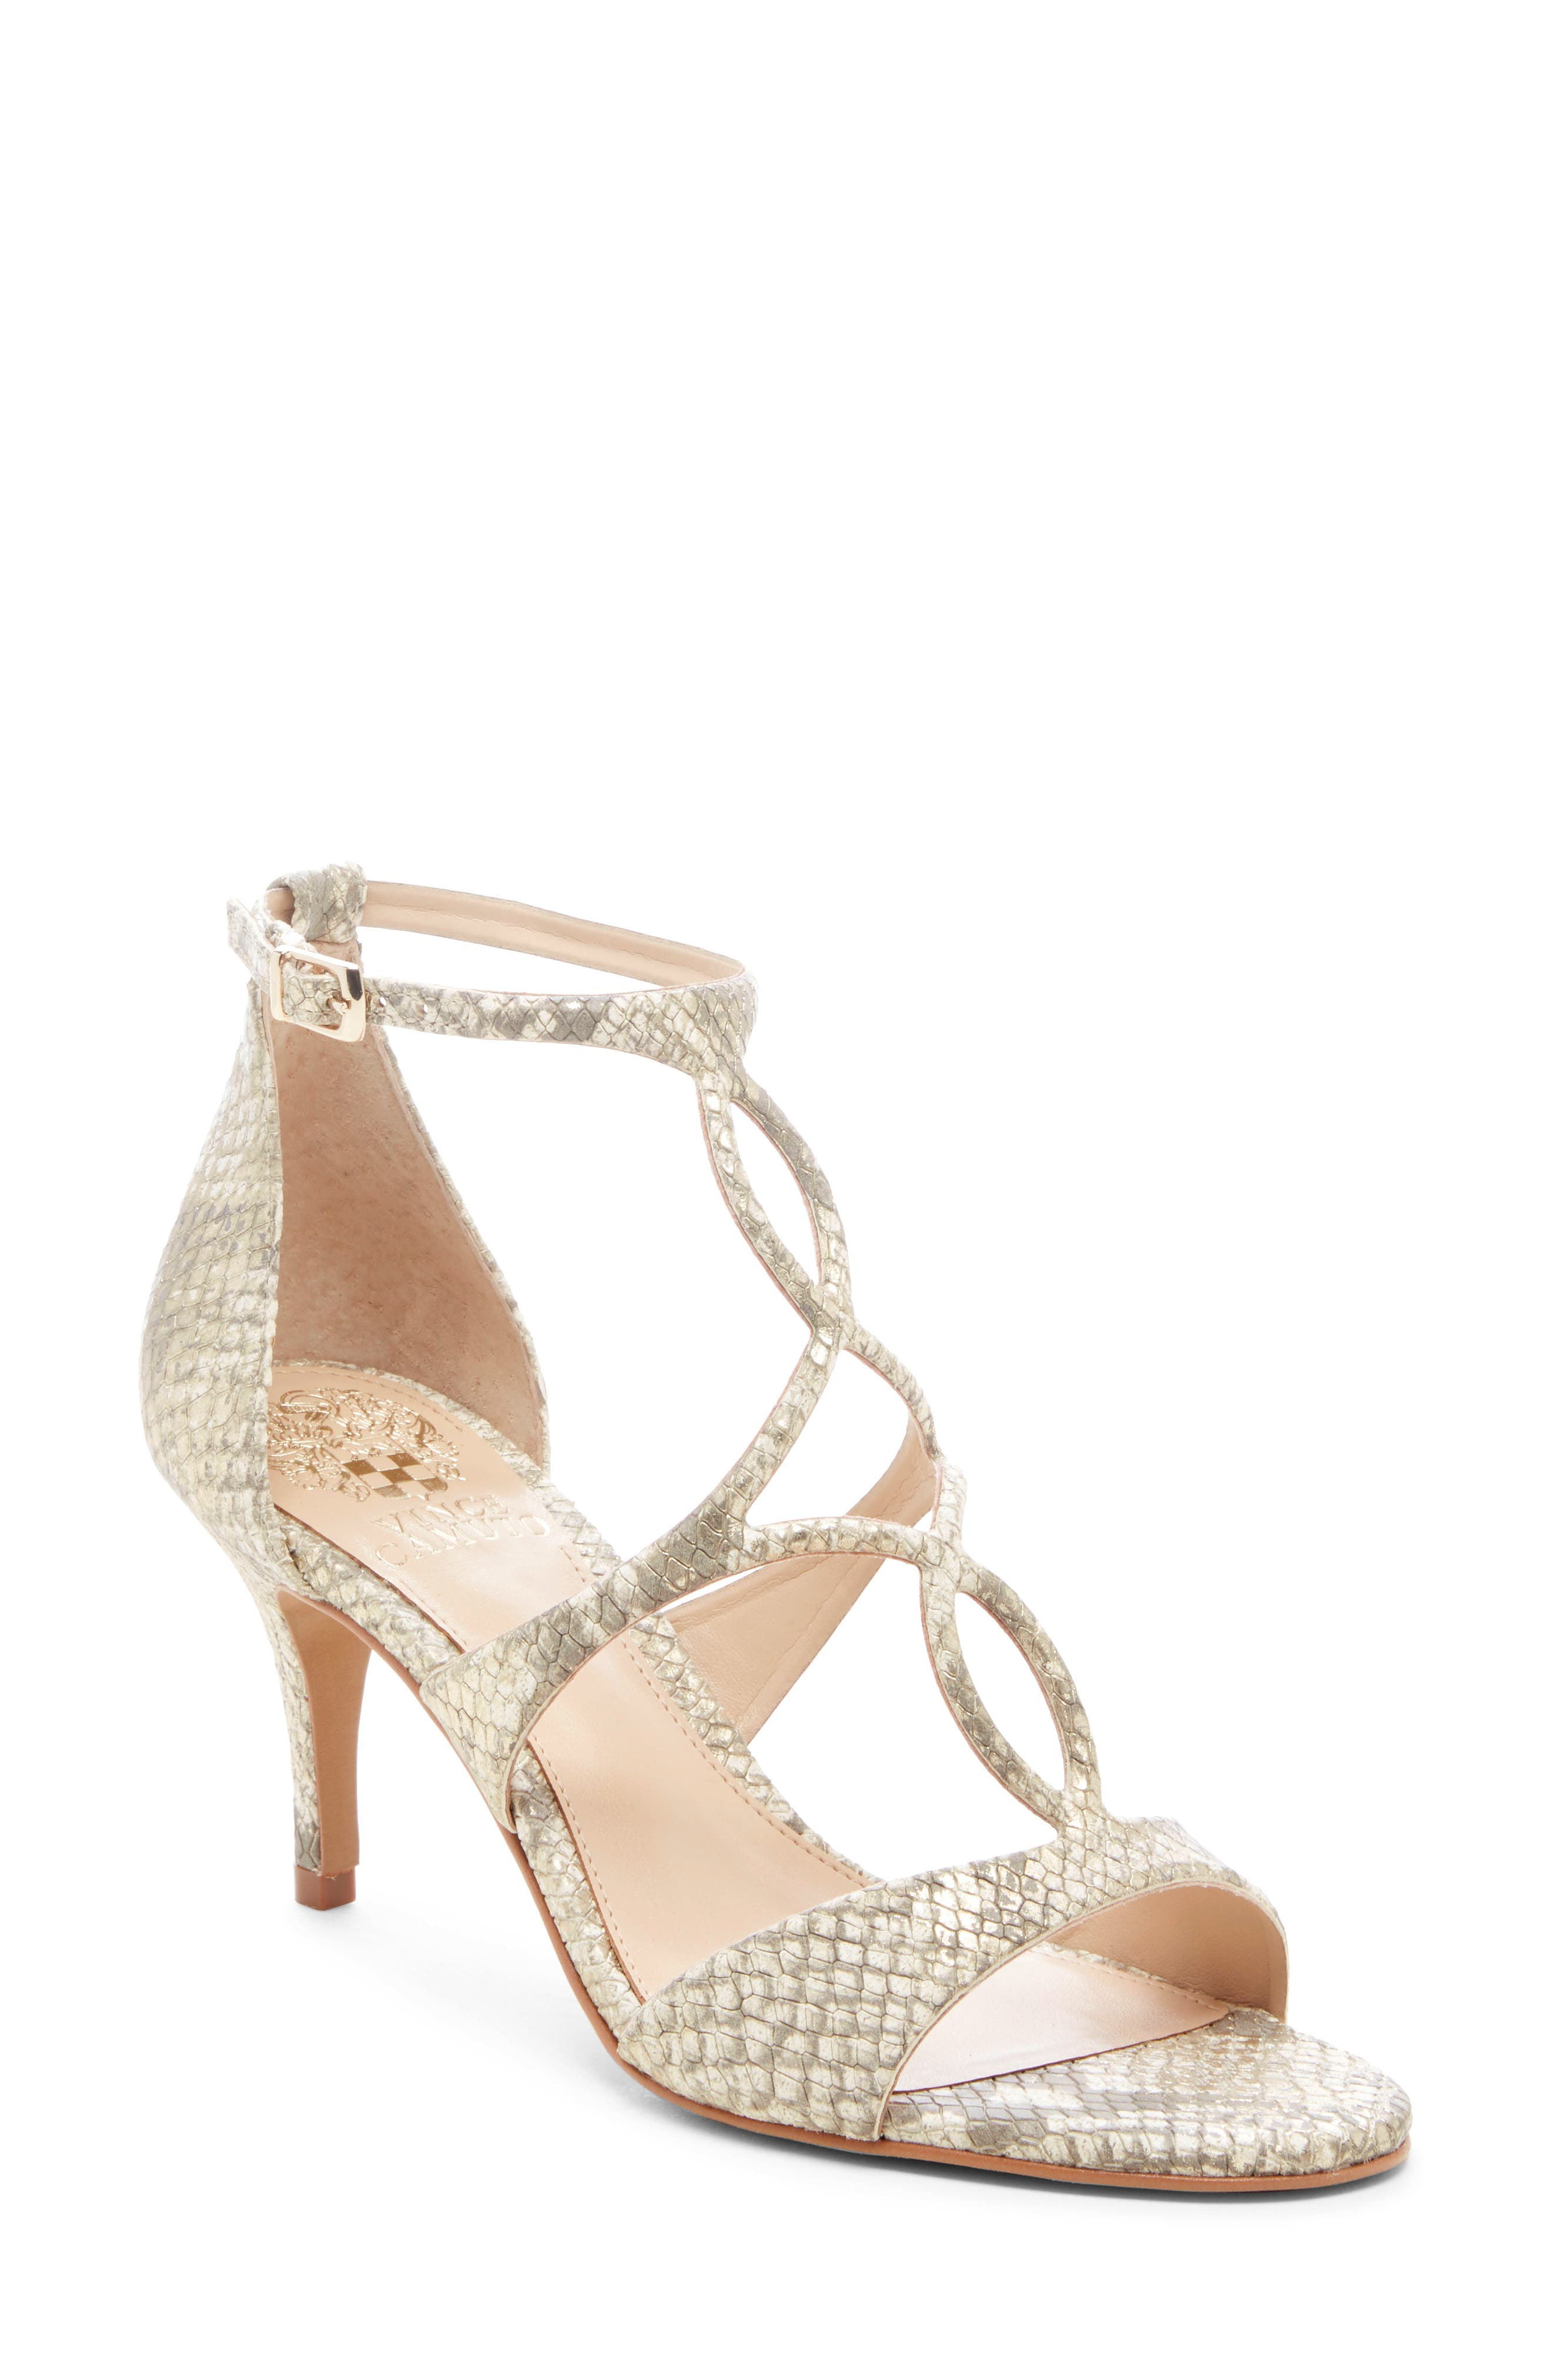 4647426b4010 Vince Camuto Women s Ankle Strap Heels